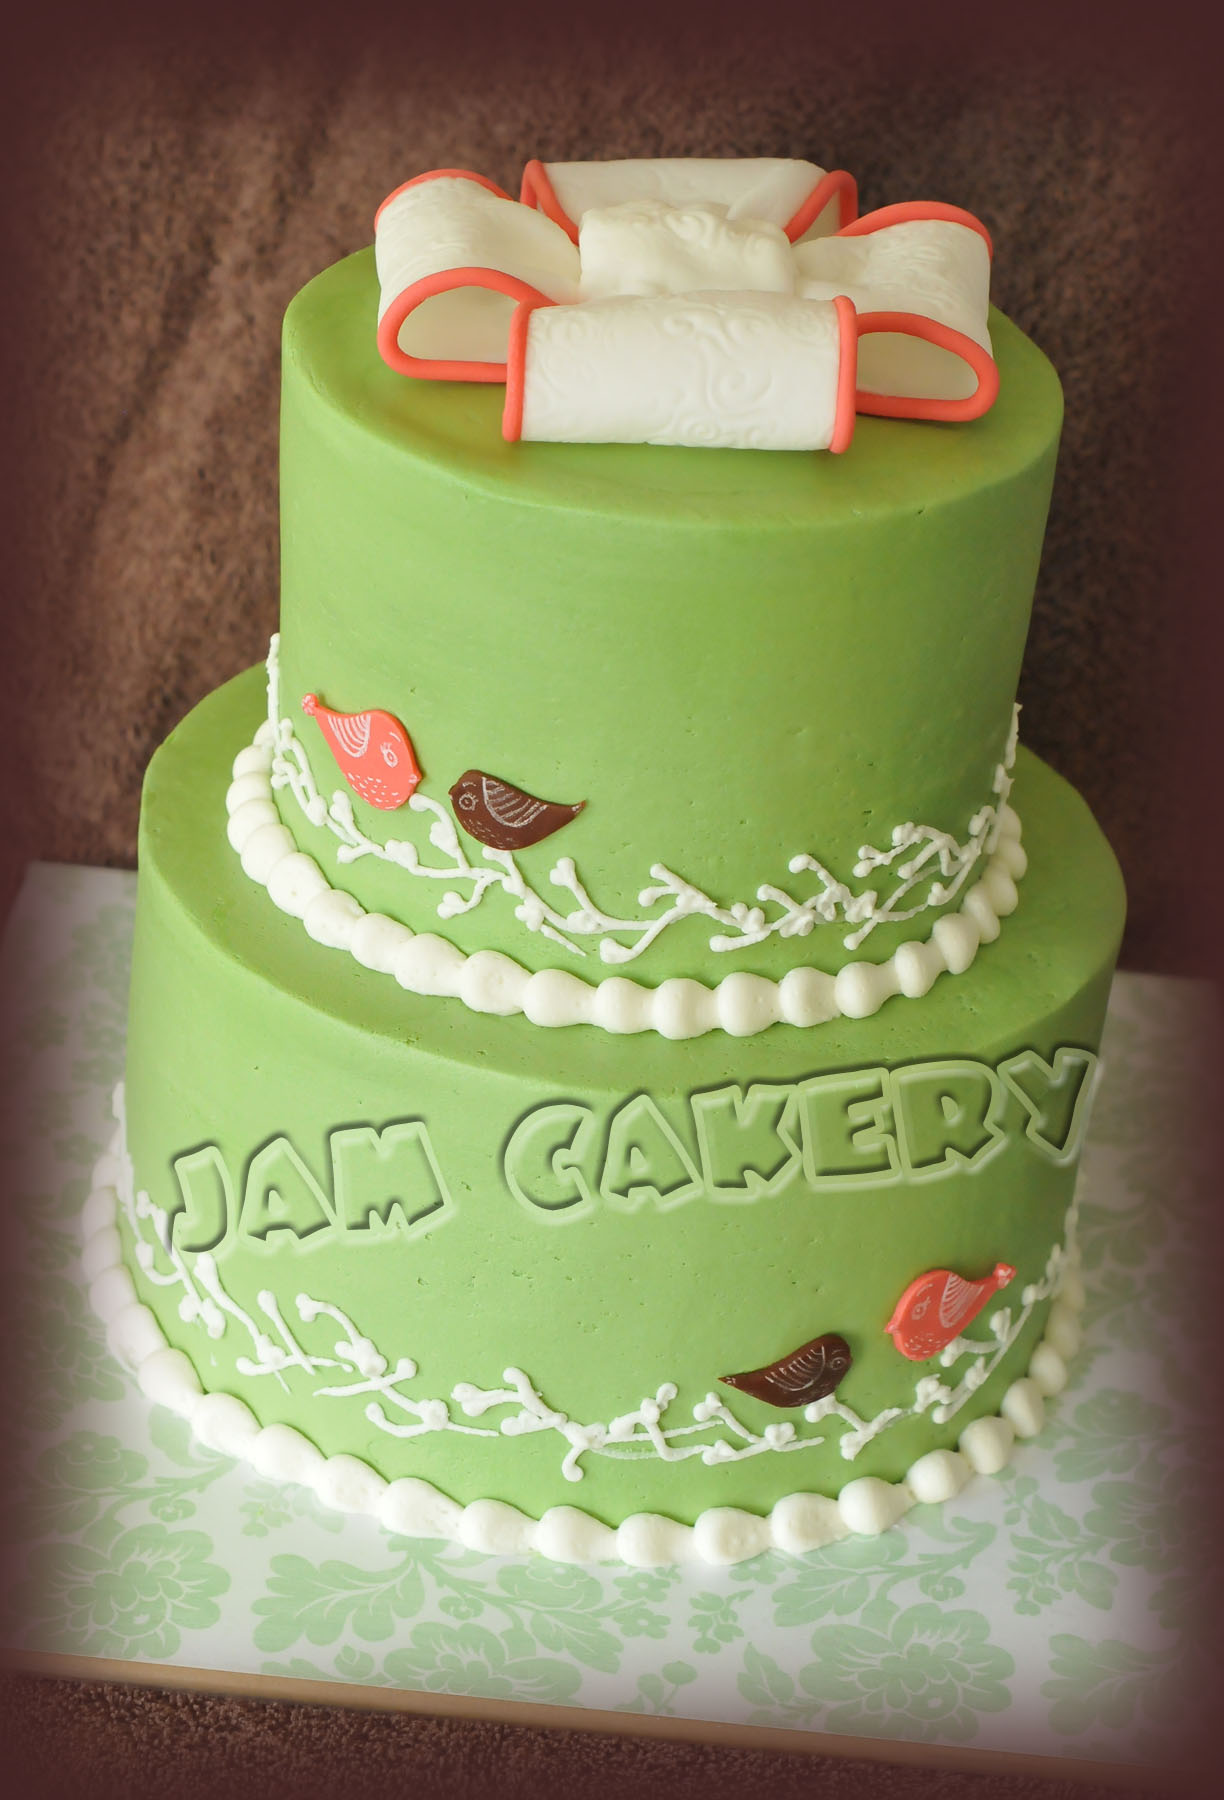 vintage birdie baby shower cake j a m cakery